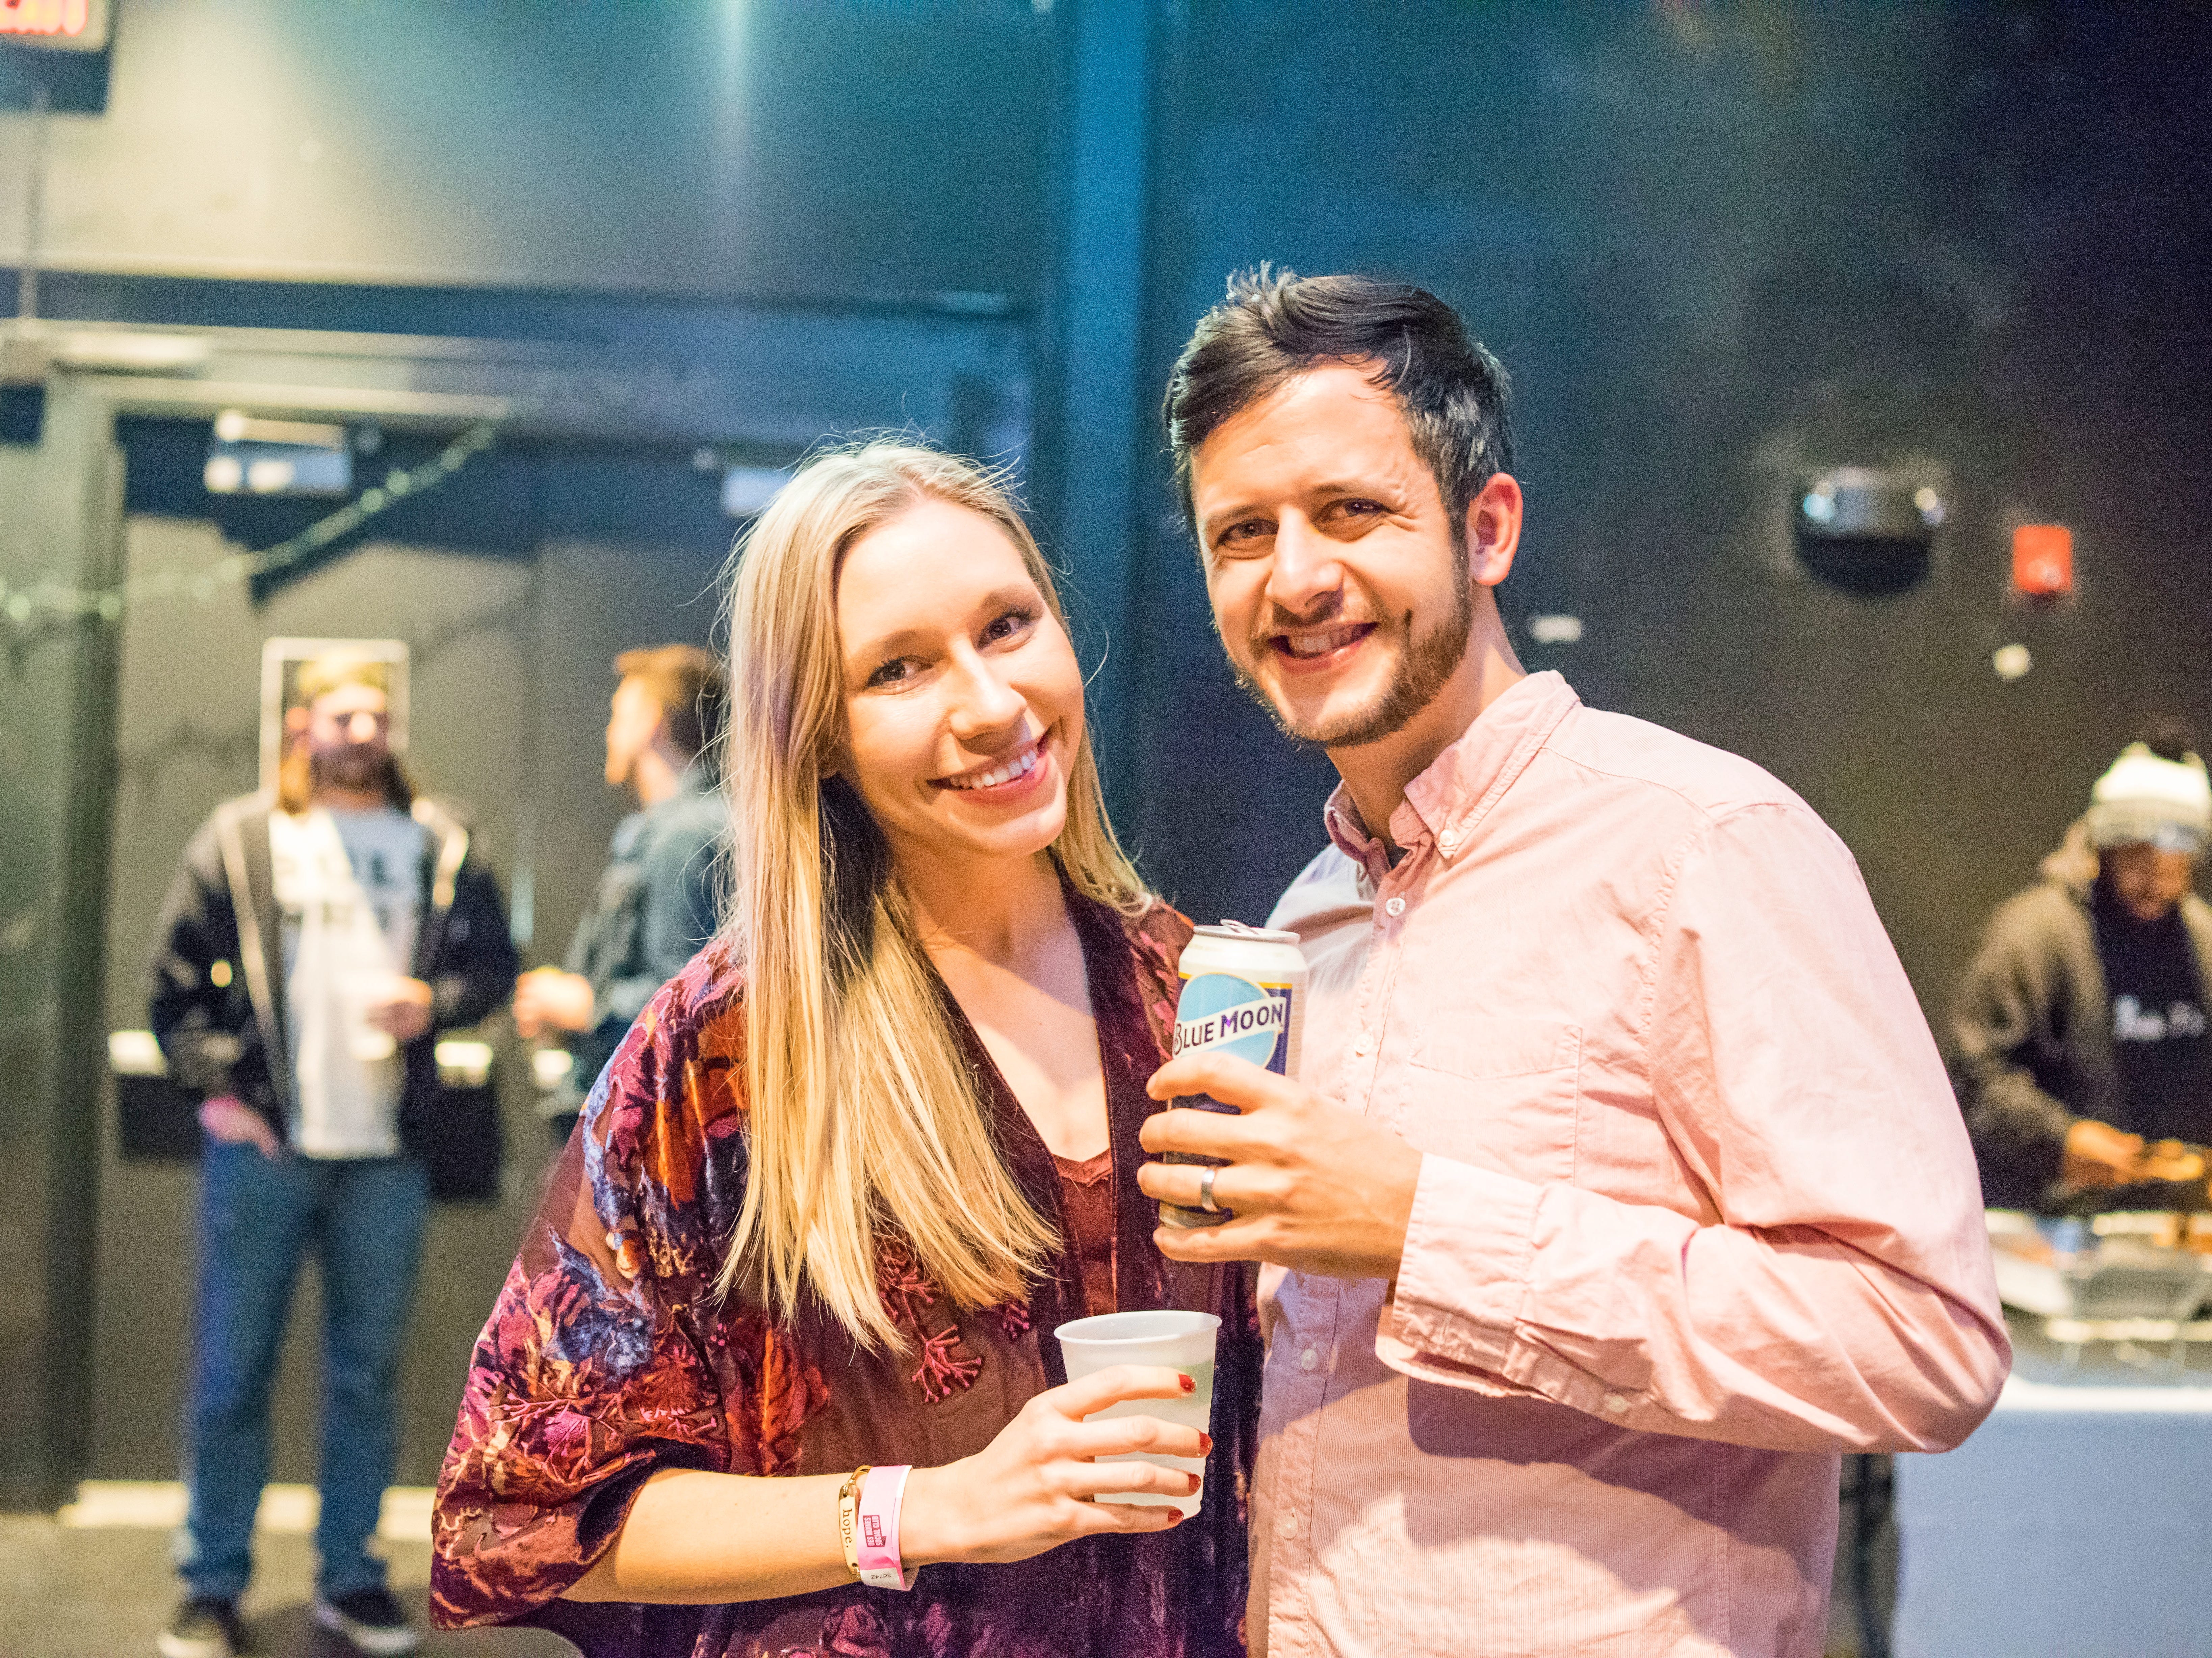 Luke Denlinger, 27, and Michaela Delinger, 26, both of Des Moines, having a fun time, Friday, Dec. 7, at Heatwave, hosted by the Des Moines Social Club.